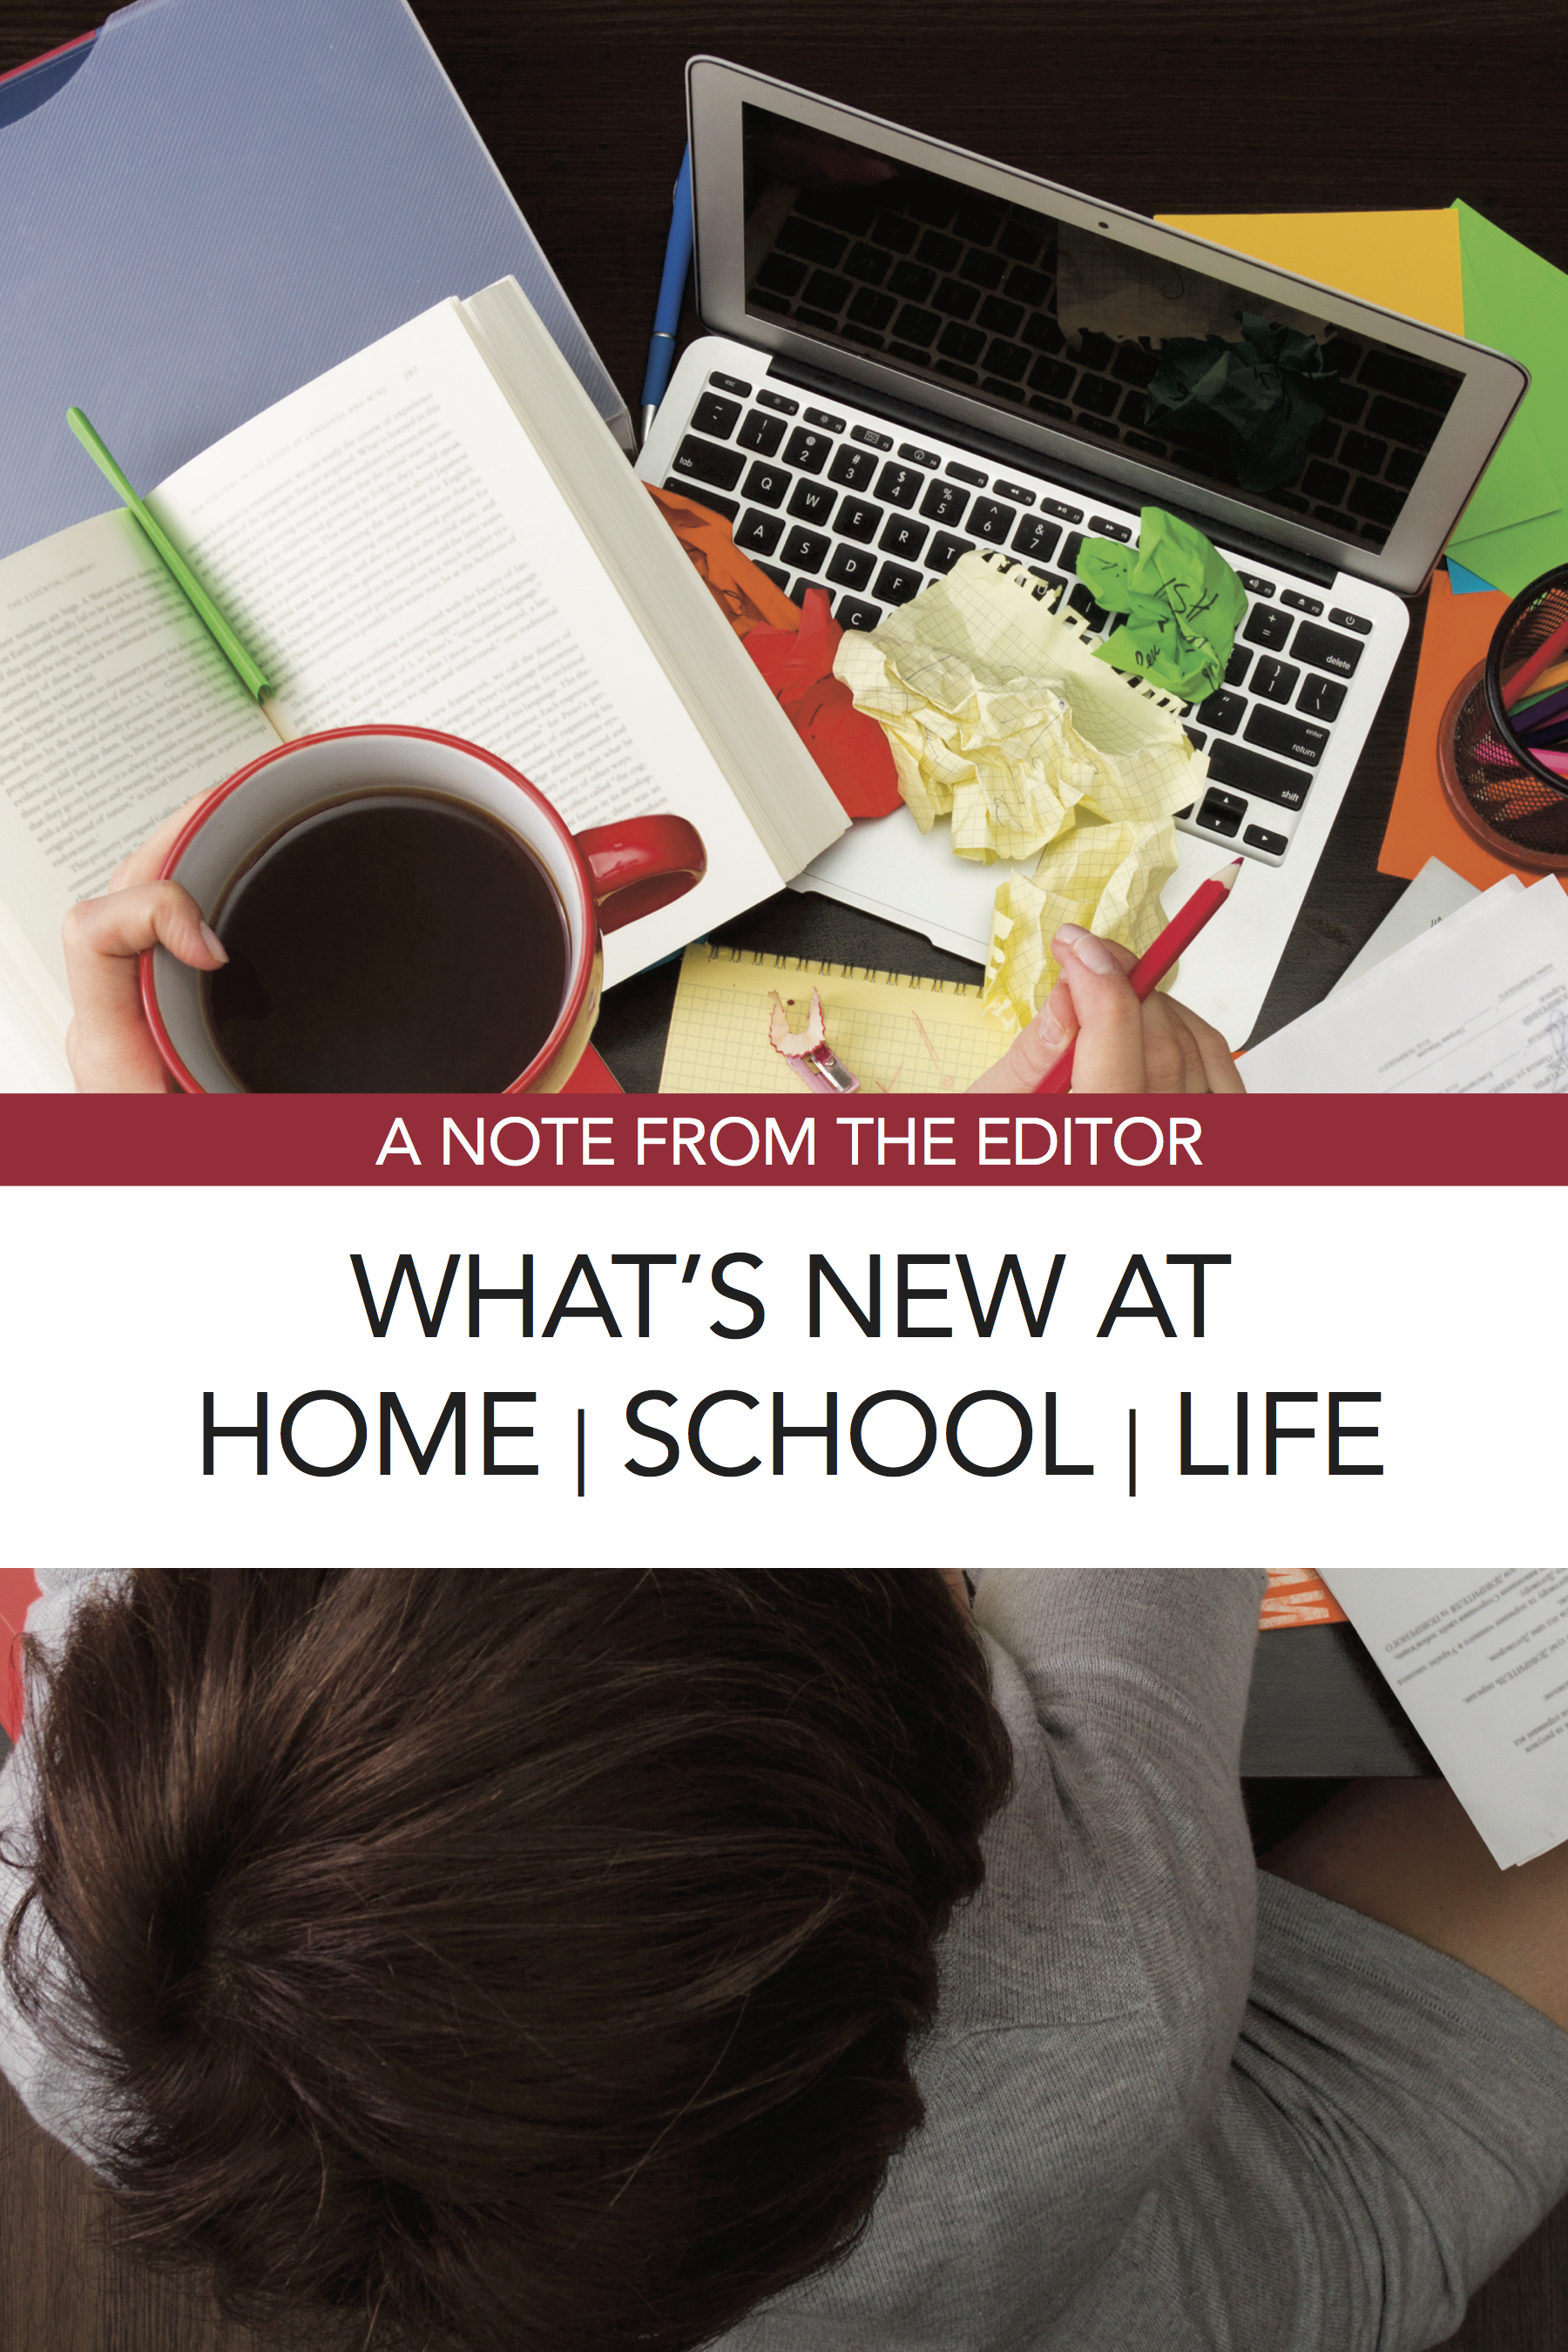 Our secular homeschool podcast, online classes, book club, new bloggers, and more--a little update from HSL